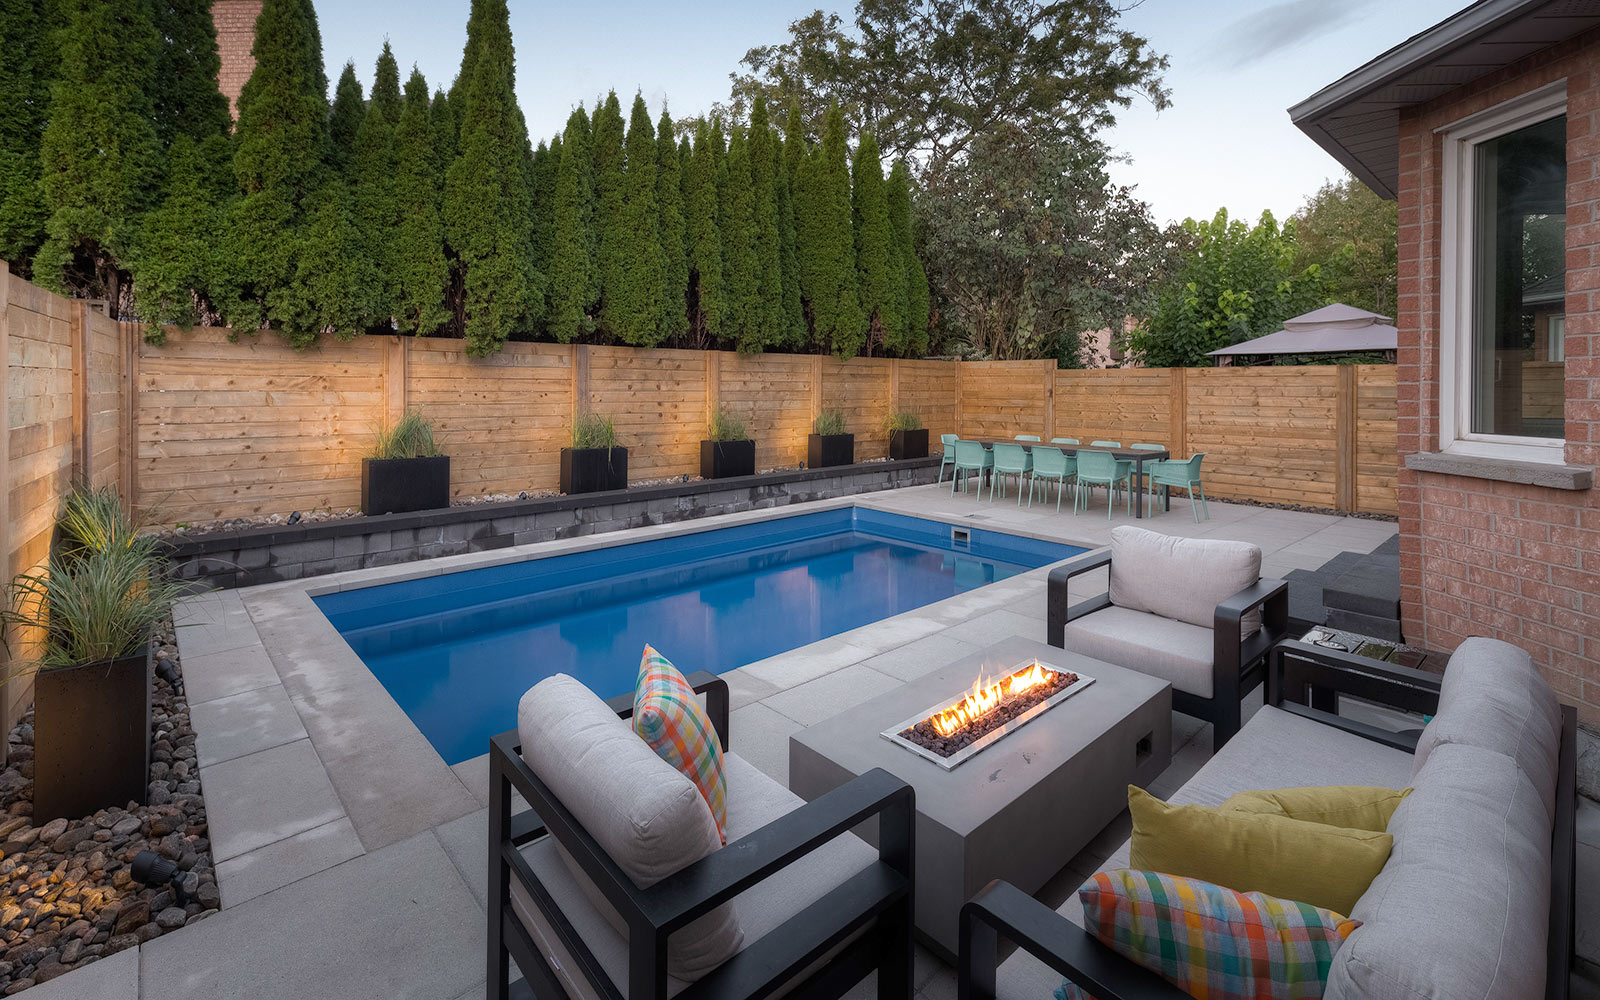 Toronto Landscape Project; Featuring Concrete Pool Installation, Cedar Privacy Fence, Outdoor Fireplace, Pool Deck Interlocking & Small Retaining Wall Around Pool Area by Toronto Landscaping Company.